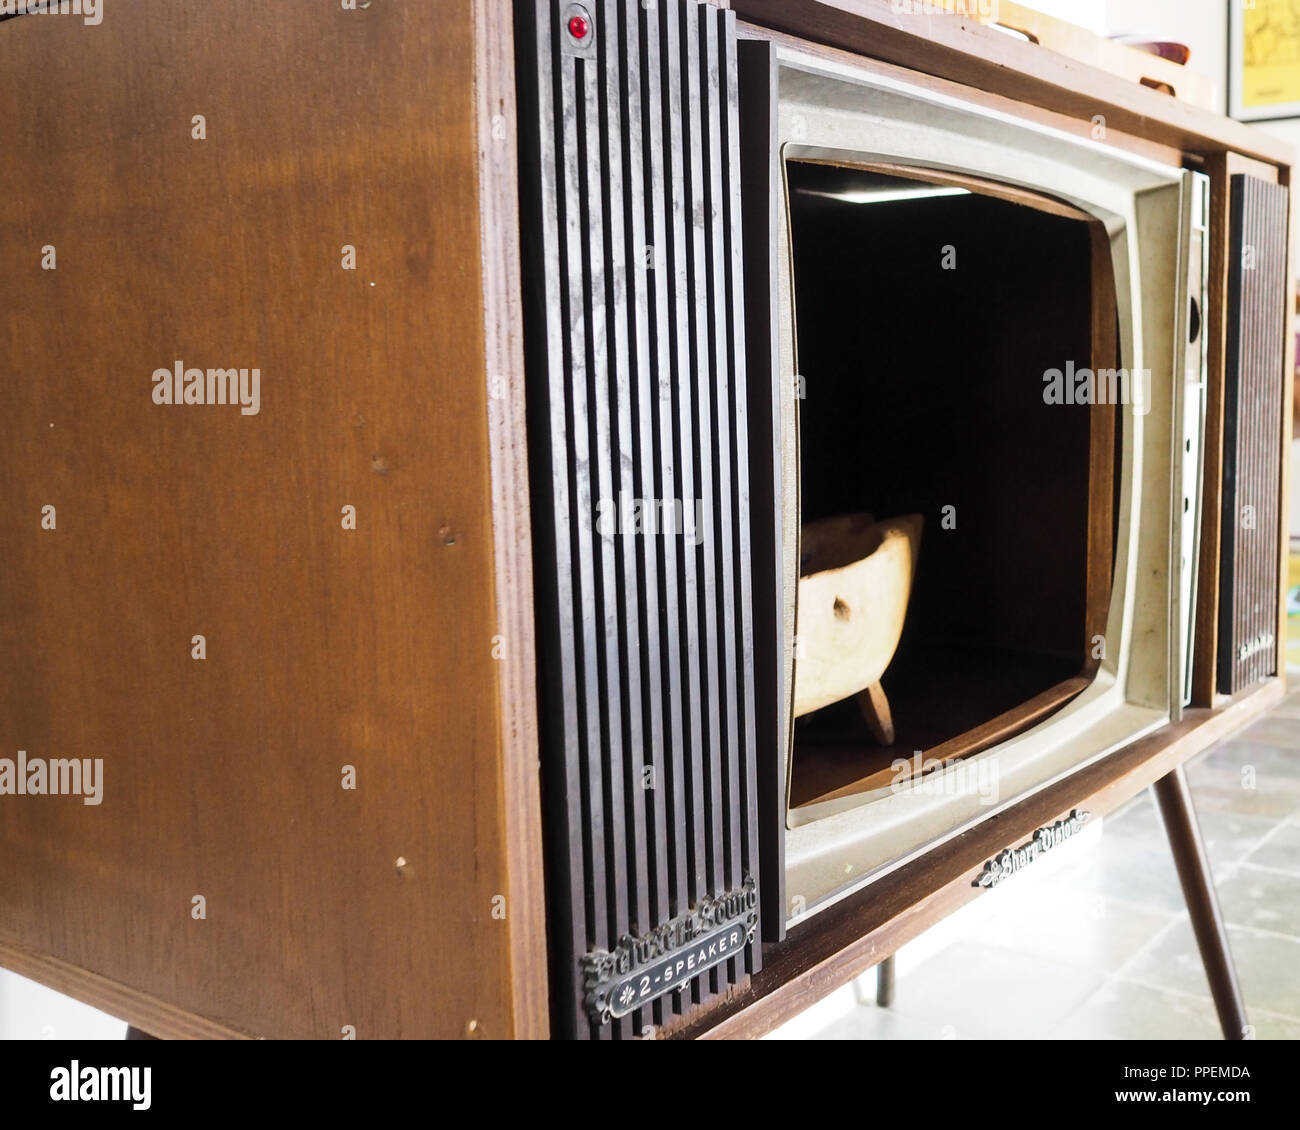 Refungsional vintage television - Stock Image